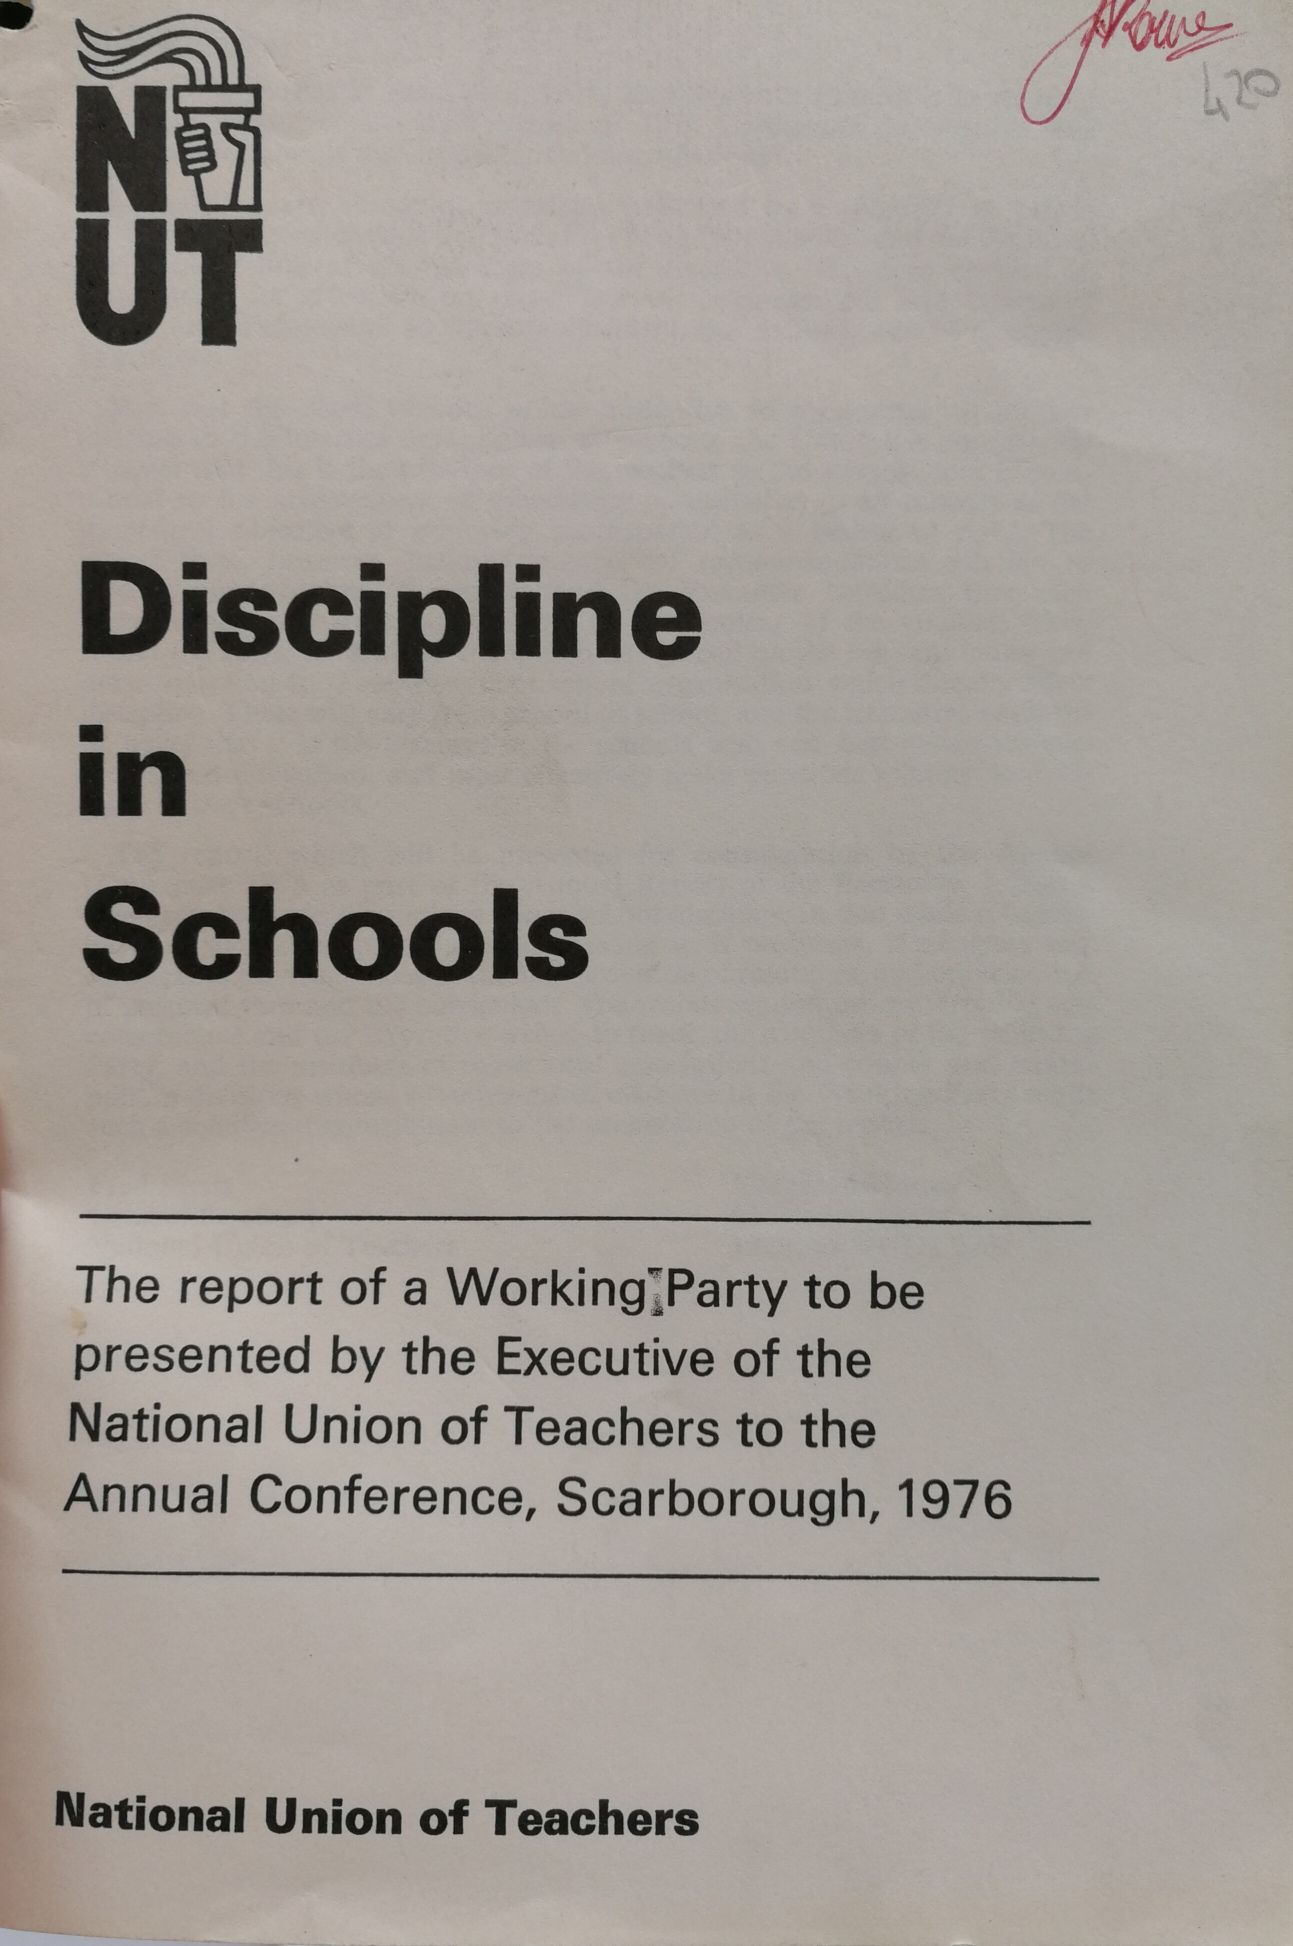 Image icon of a publication on discipline in schools